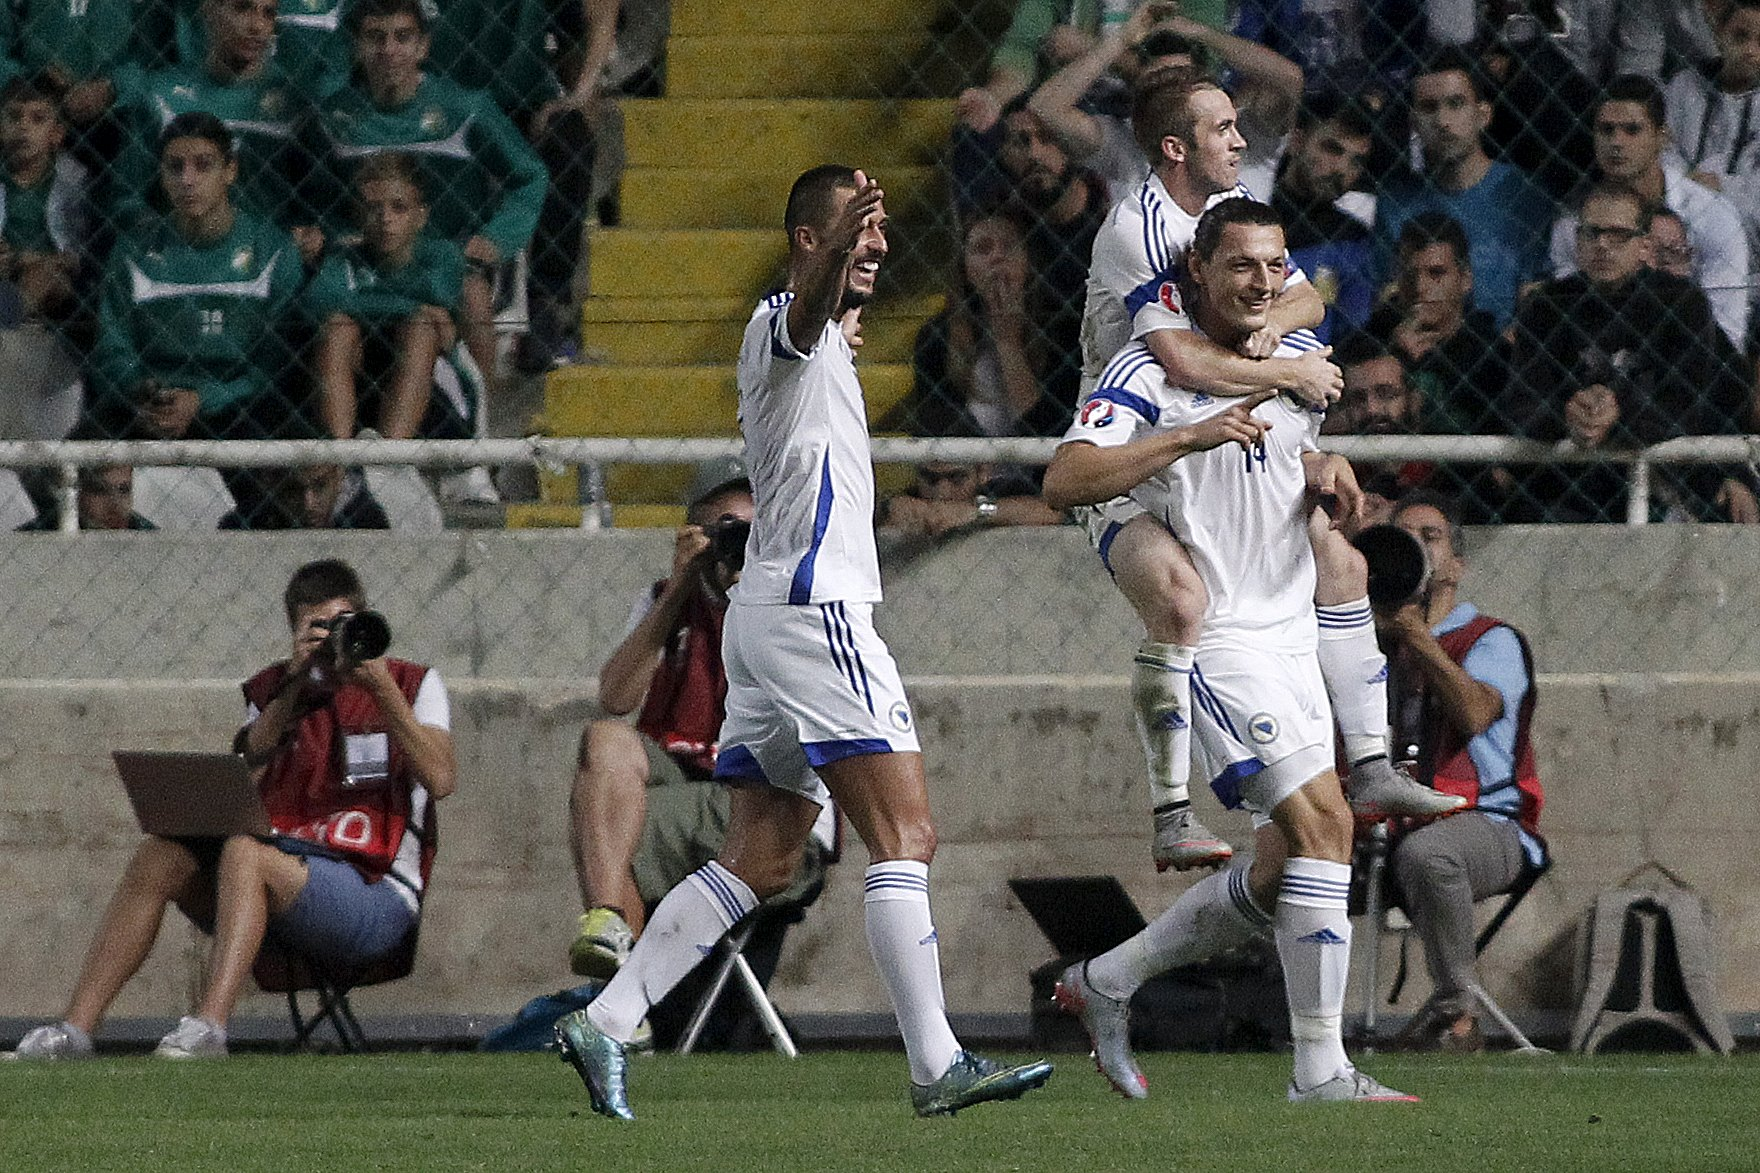 Bosnia's Milan Djuric (C) celebrates a goal  with teammates during the Euro 2016 group B qualification match against Cyprus at the GSP stadium in Nicosia, Cyprus October 13, 2015. REUTERS/Yiannis Kourtoglou